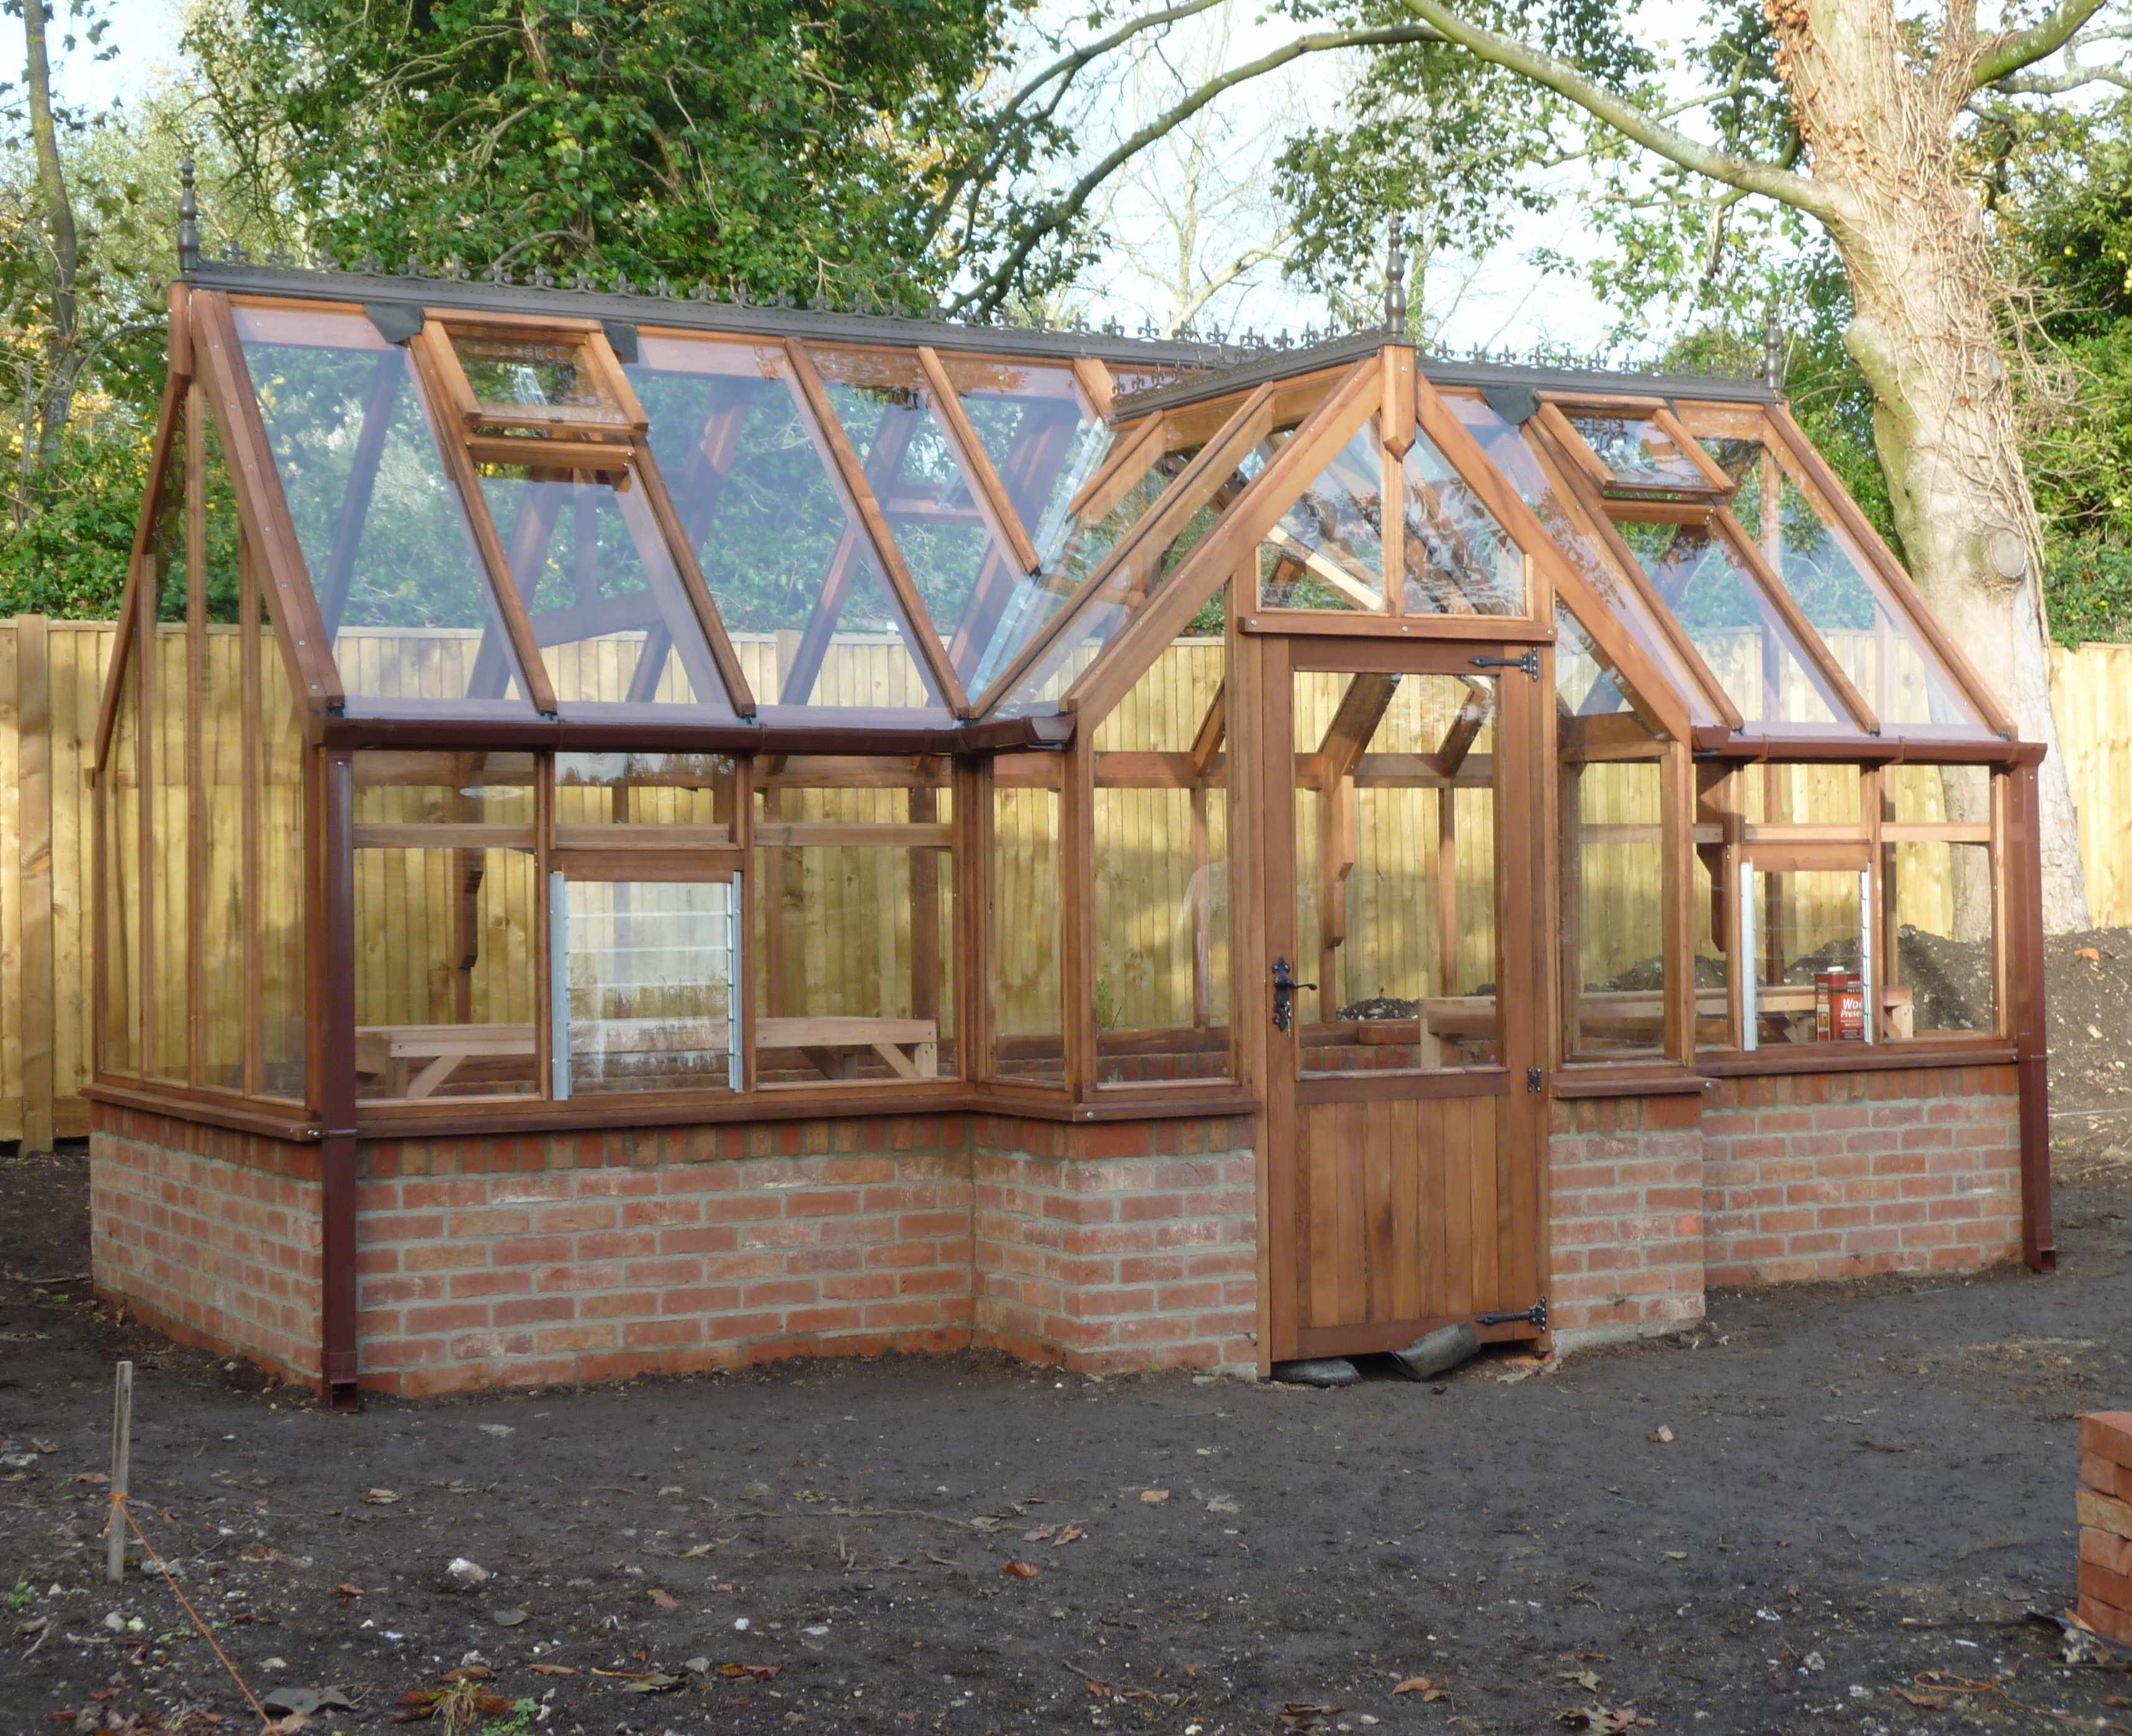 Kings bromley woodpecker joinery uk ltd for Inexpensive greenhouse shelving wood